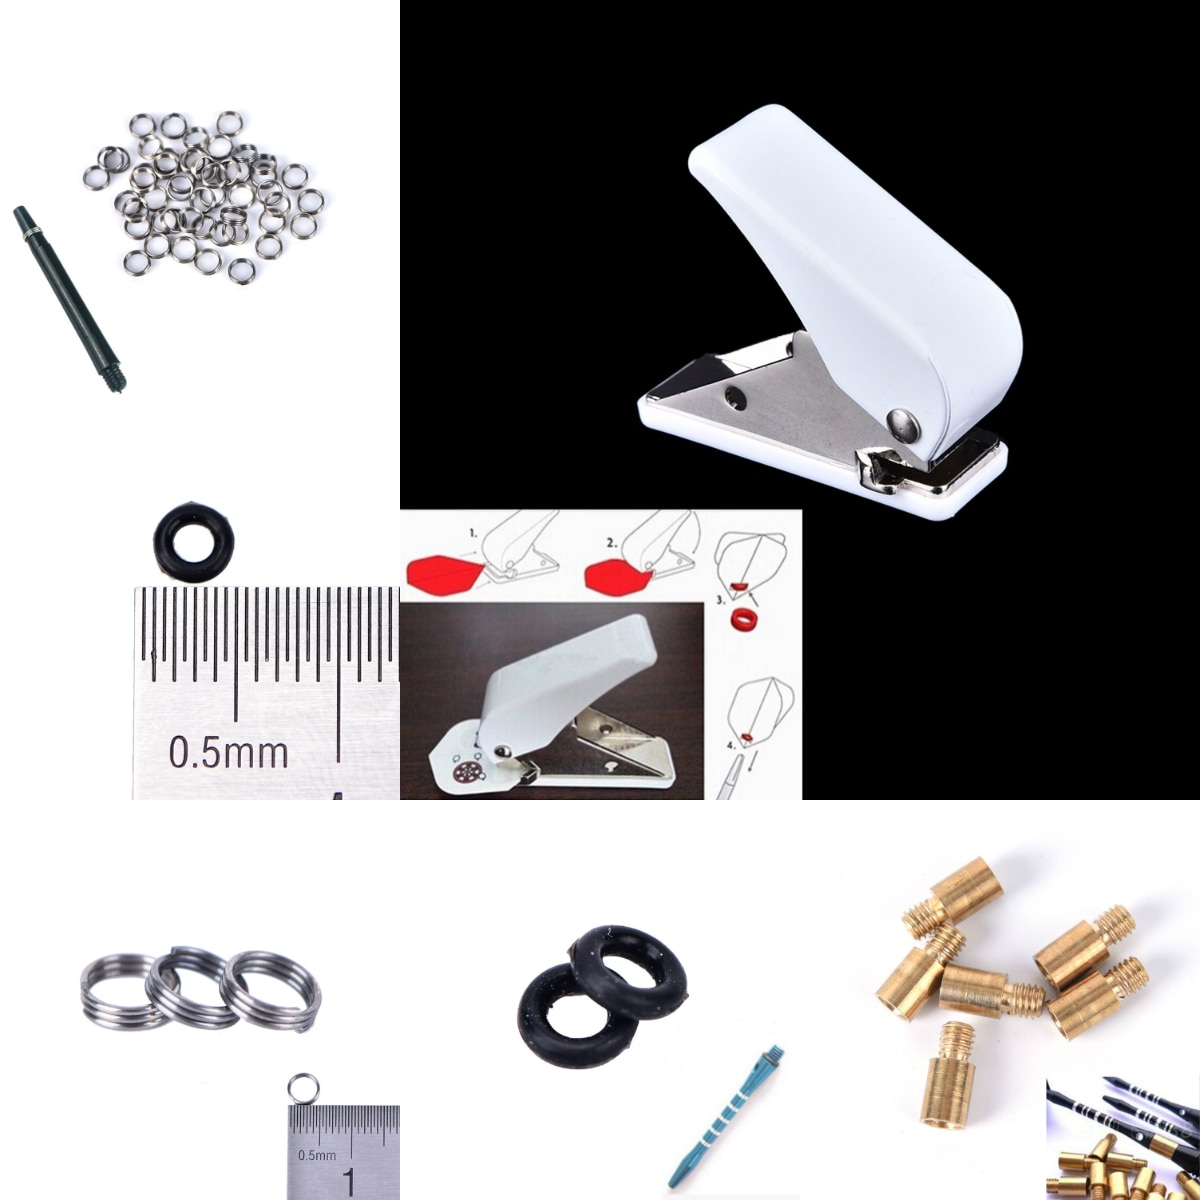 hollow shaft brushed slip ring through hole 12 7mm rotary joint conductive slipring out 54mm 6 12 18 24 circuits 5a collect ring Dart Flights Hole Puncher Punch Shaft Metal Ring Accessories Darts Tool O Ring Darts Arrow Tips Broadhead Replace Accessories